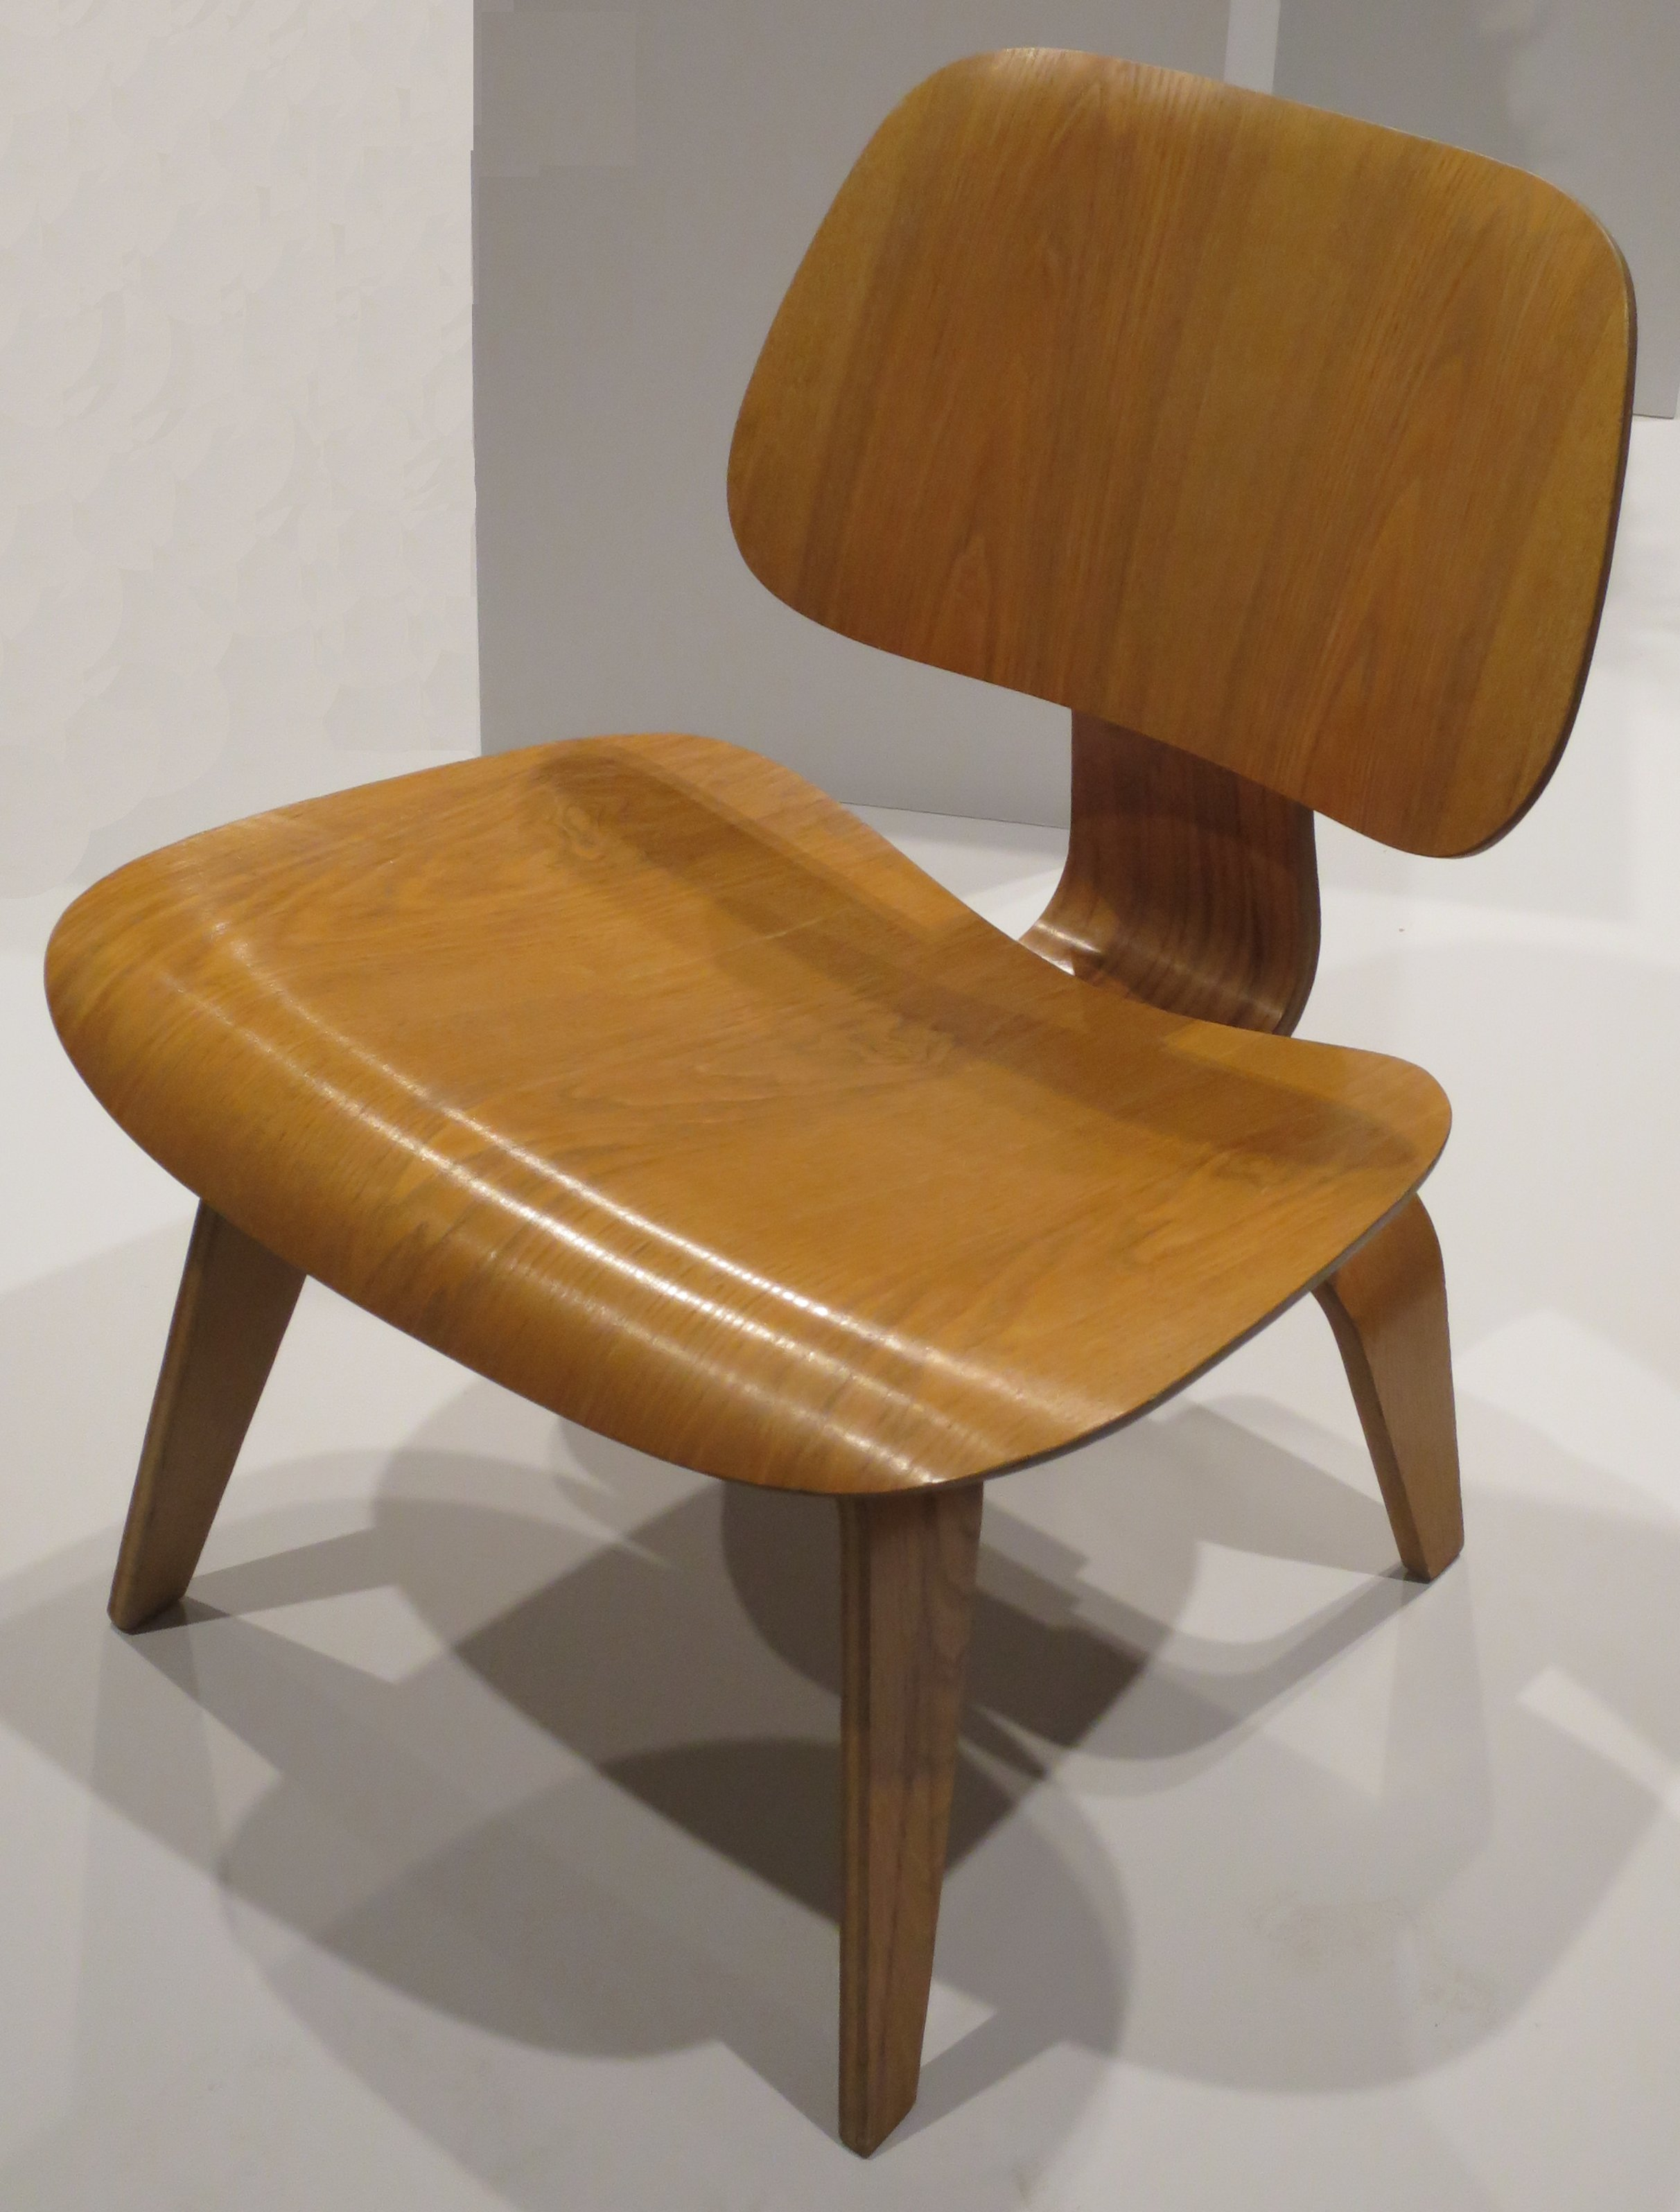 Eames Plywood Chair Eames Lounge Chair Wood Wikipedia